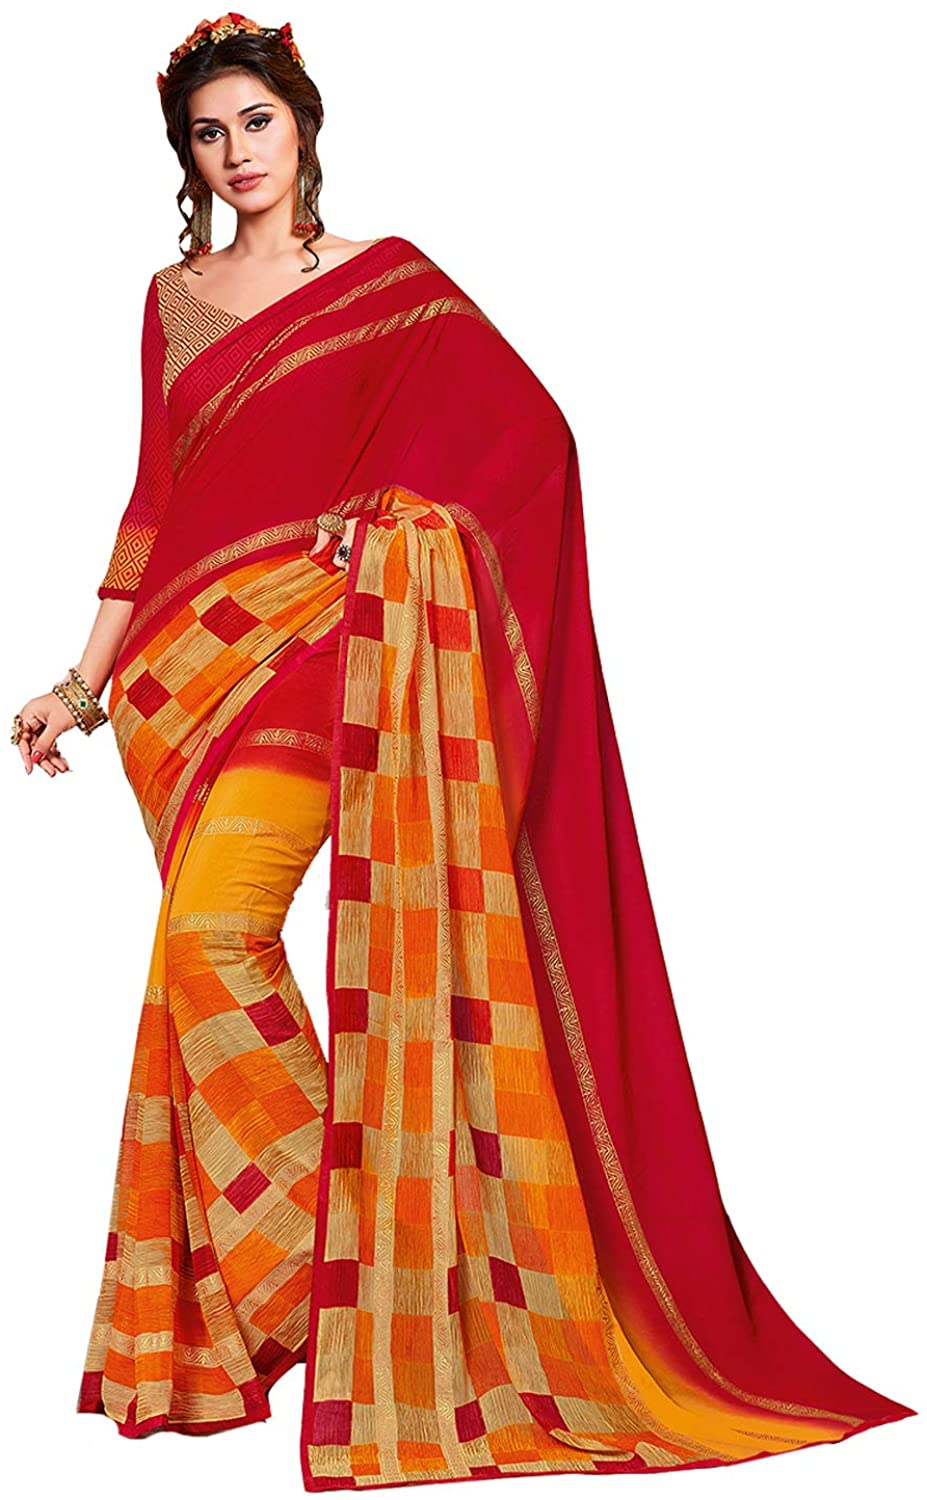 Saree for Women Bollywood Wedding Designer Multi Sari with Unstitched Blouse. ICW2610-3